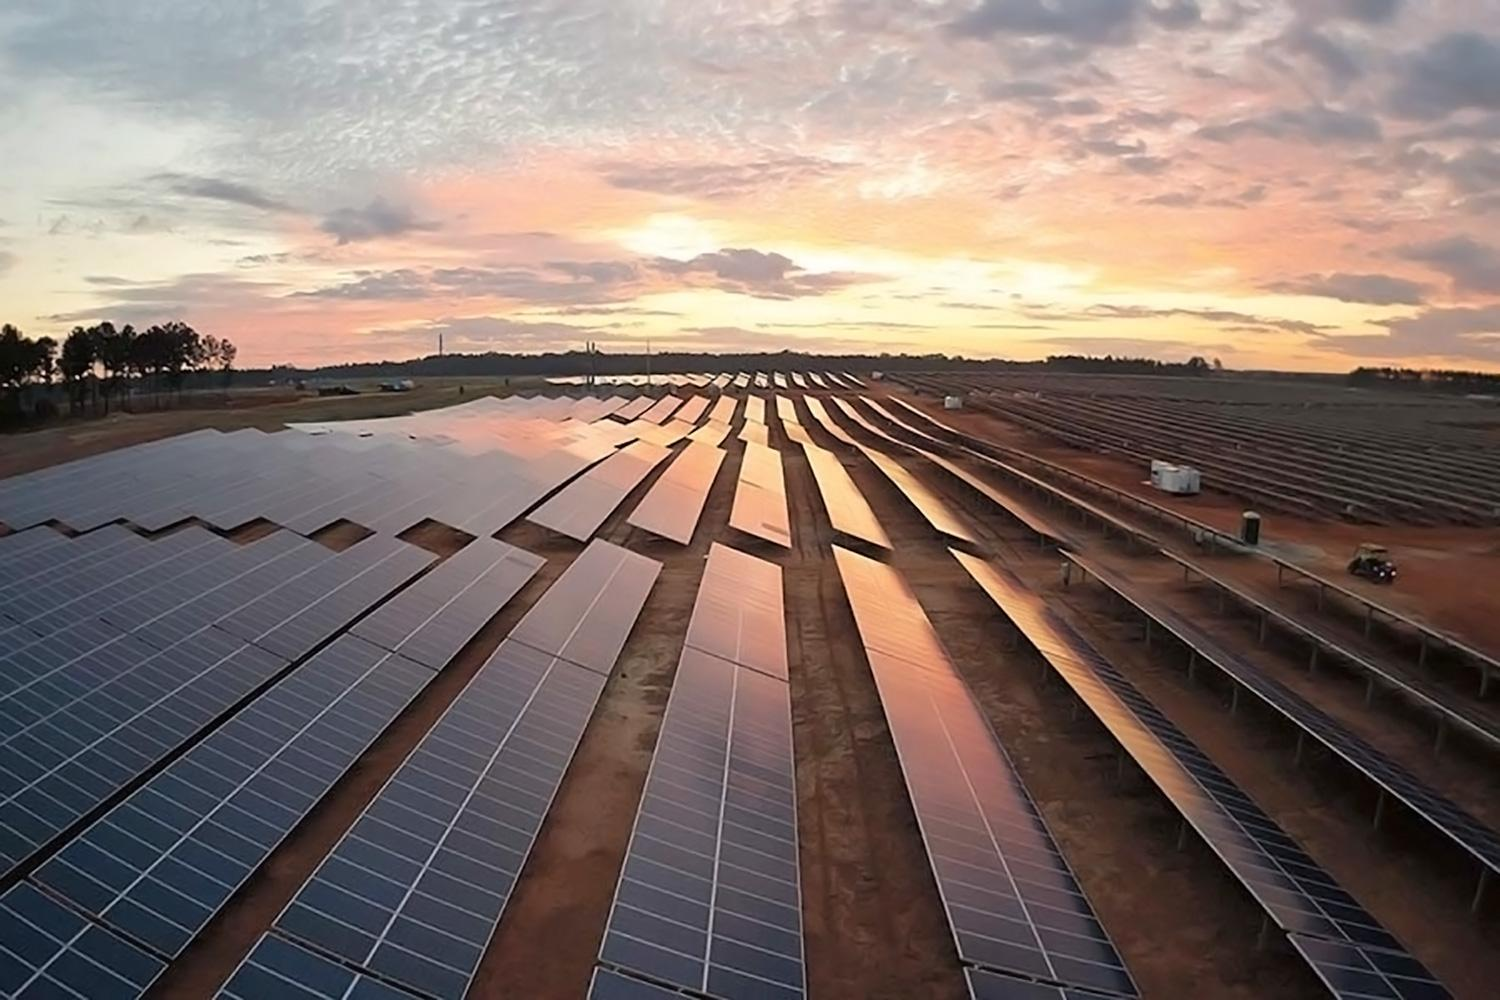 UVA and the Darden School will purchase all of the energy output from a solar farm in King William County, similar to this Dominion-owned farm on the Eastern Shore, for a 25-year period.